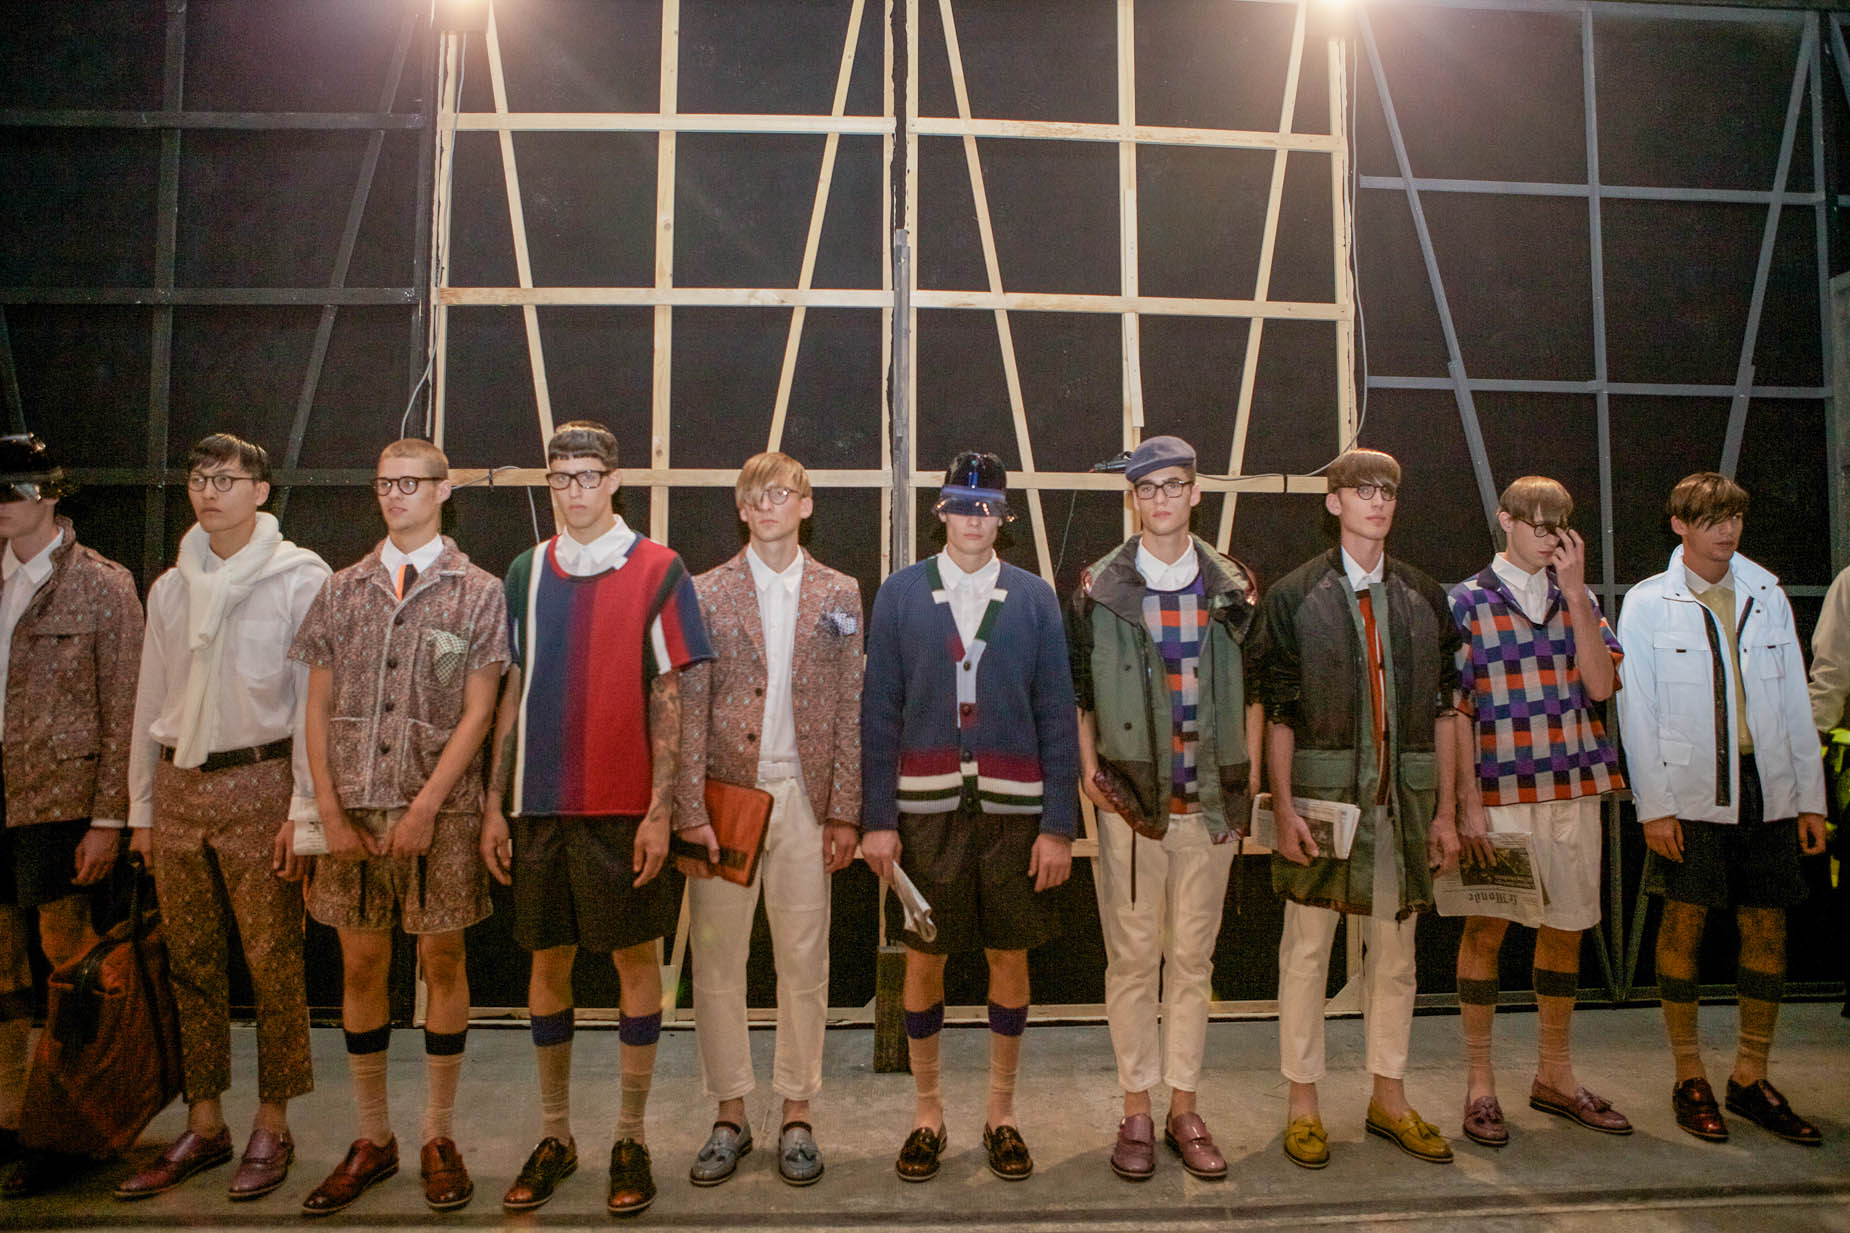 Backstage Spring Summer 2013 Fashion Menswear Trends